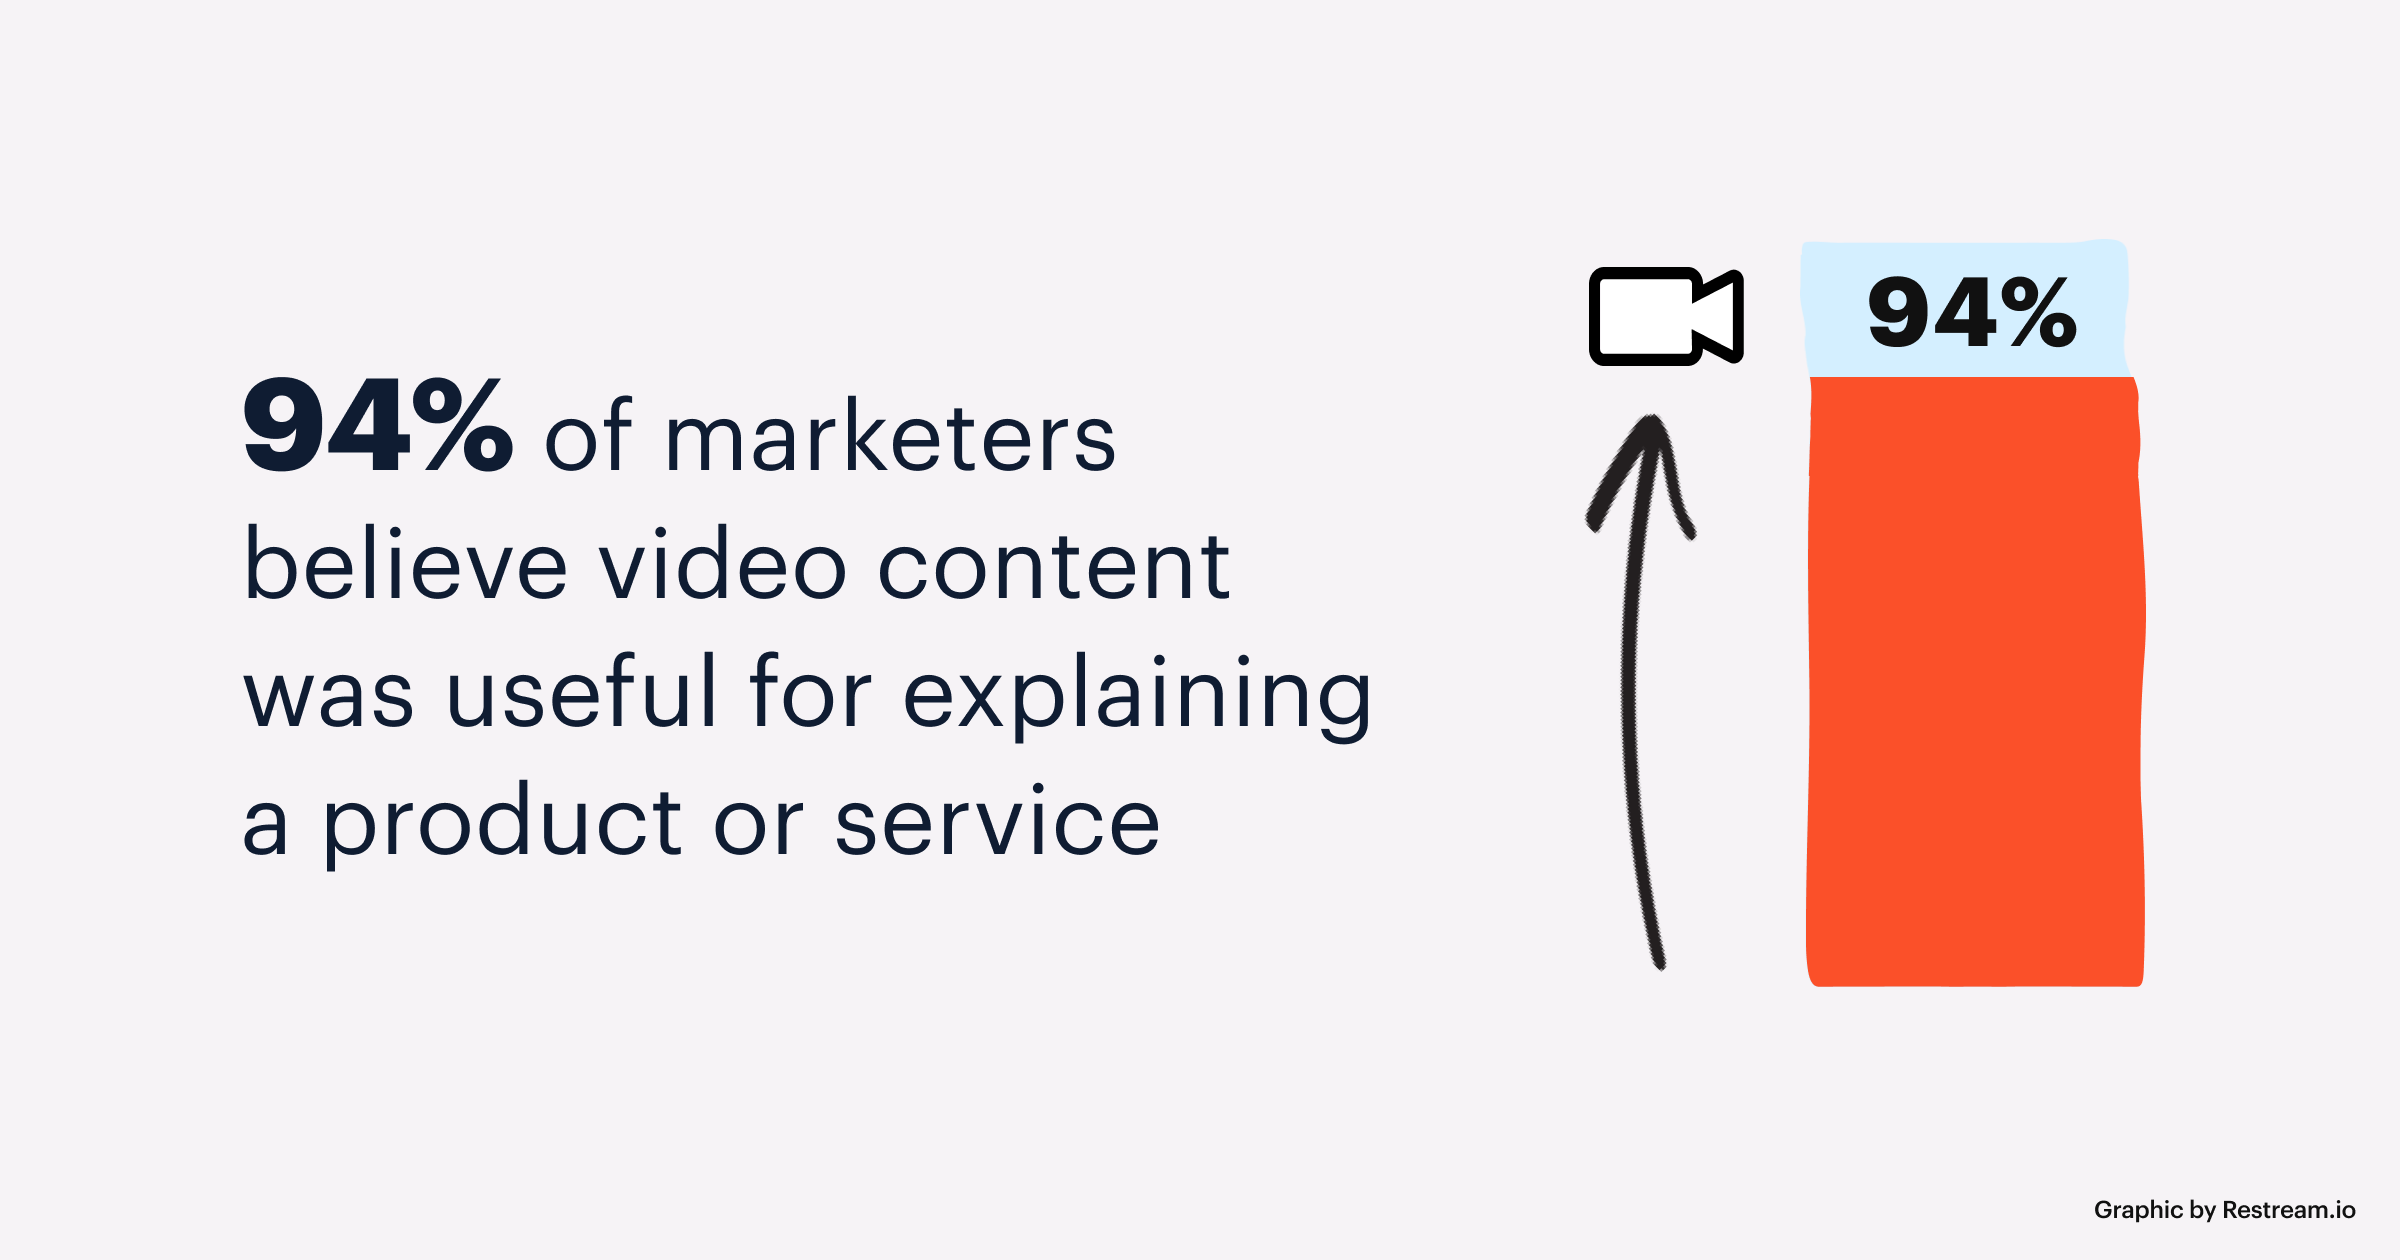 94% of marketers believe video content was useful for explaining a product or service